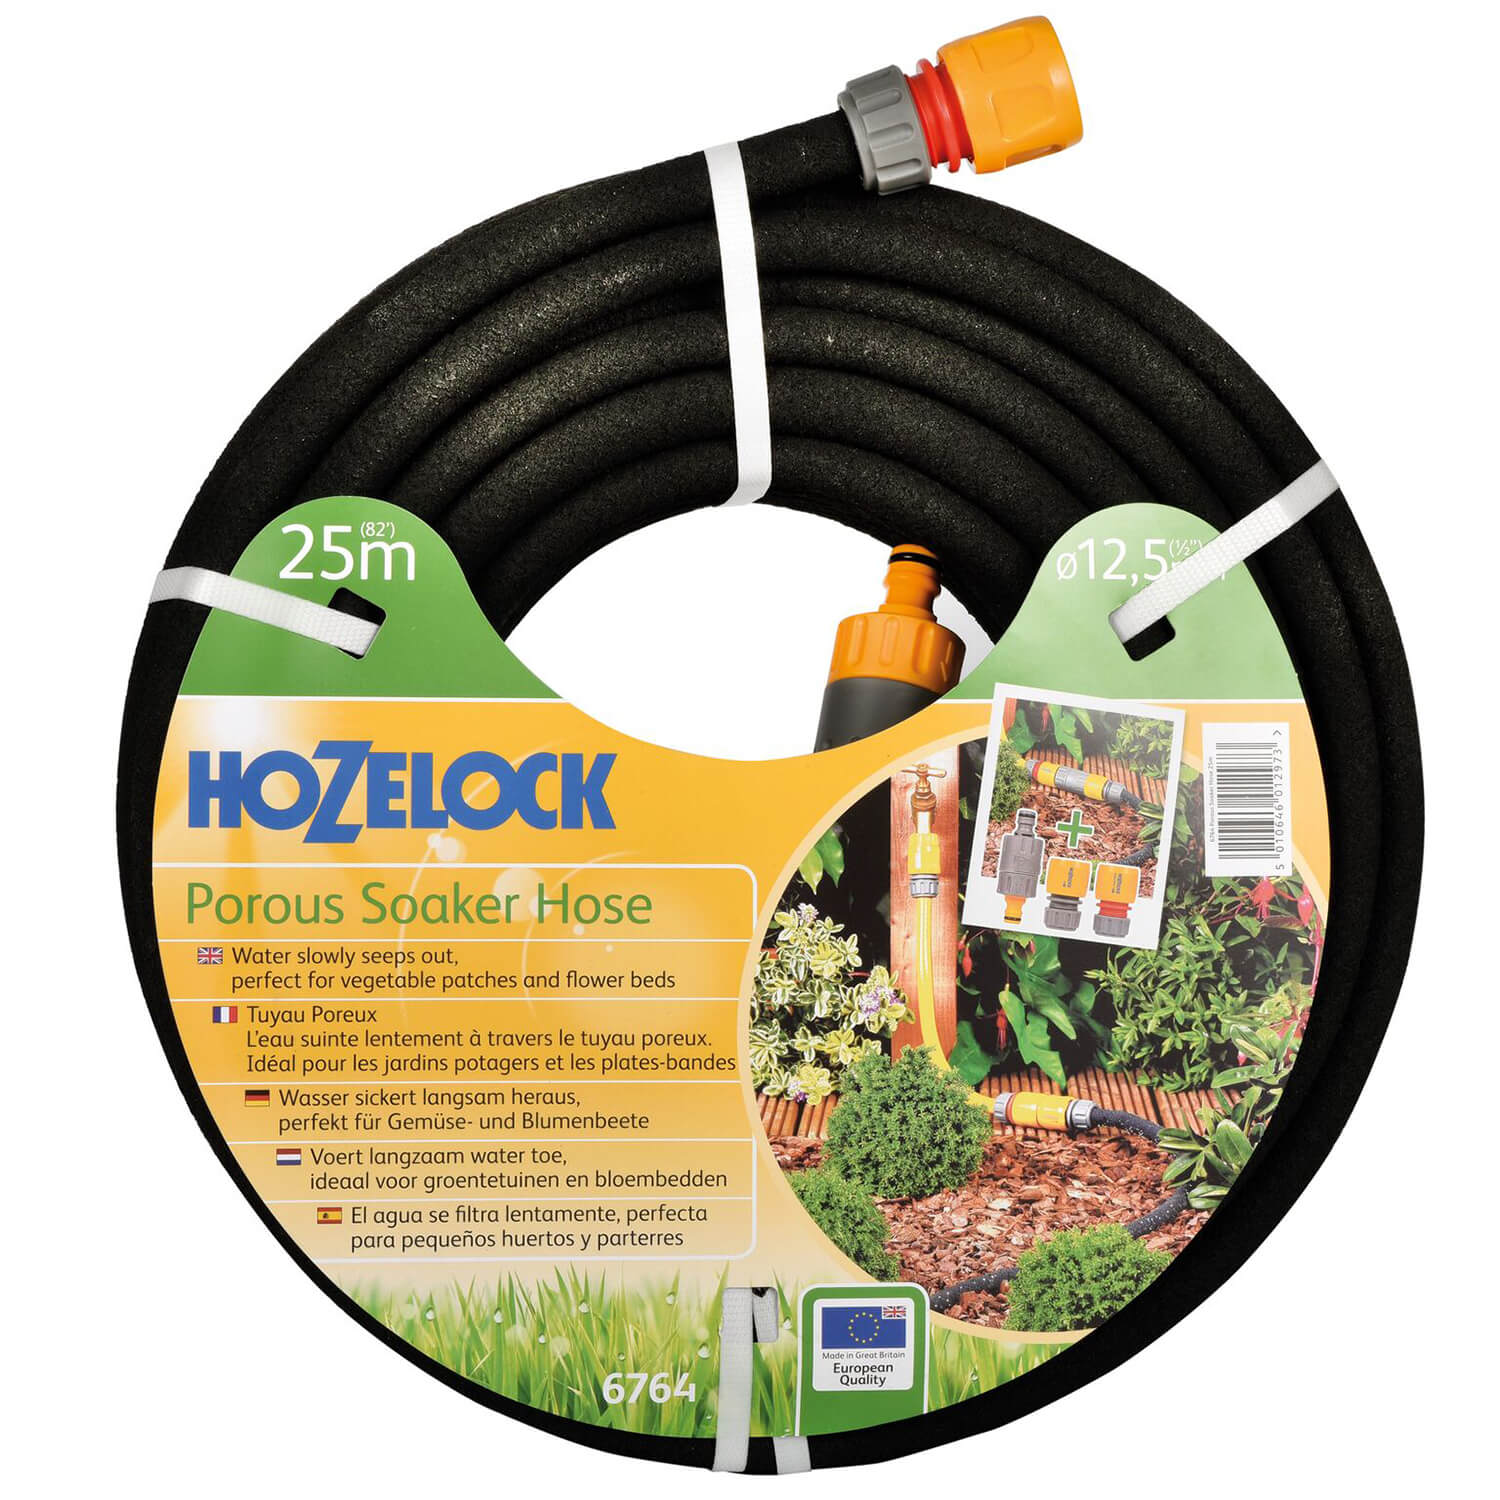 Greenkey 20M Soaker Hose Pipe Garden Irrigation Watering Porous with Fittings